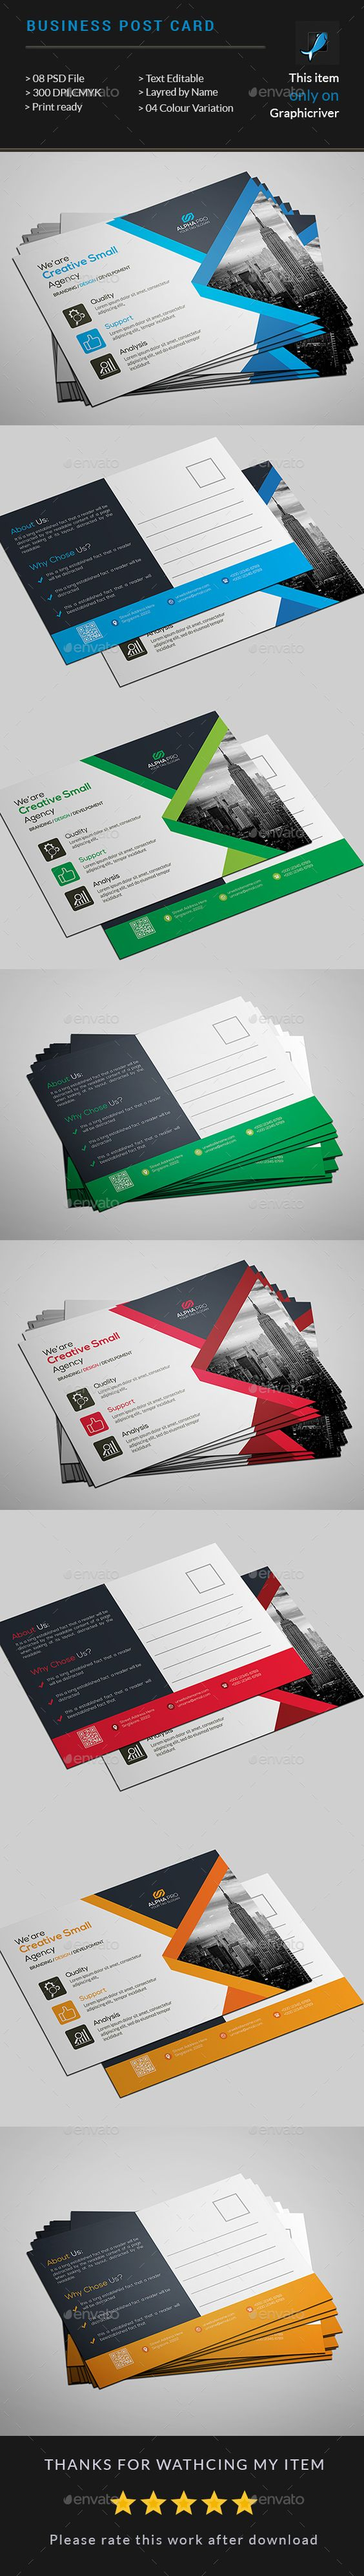 Corporate Business PostCard Design Template - Cards & Invites Print Template PSD. Download here: https://graphicriver.net/item/corporate-business-card/17675397?ref=yinkira